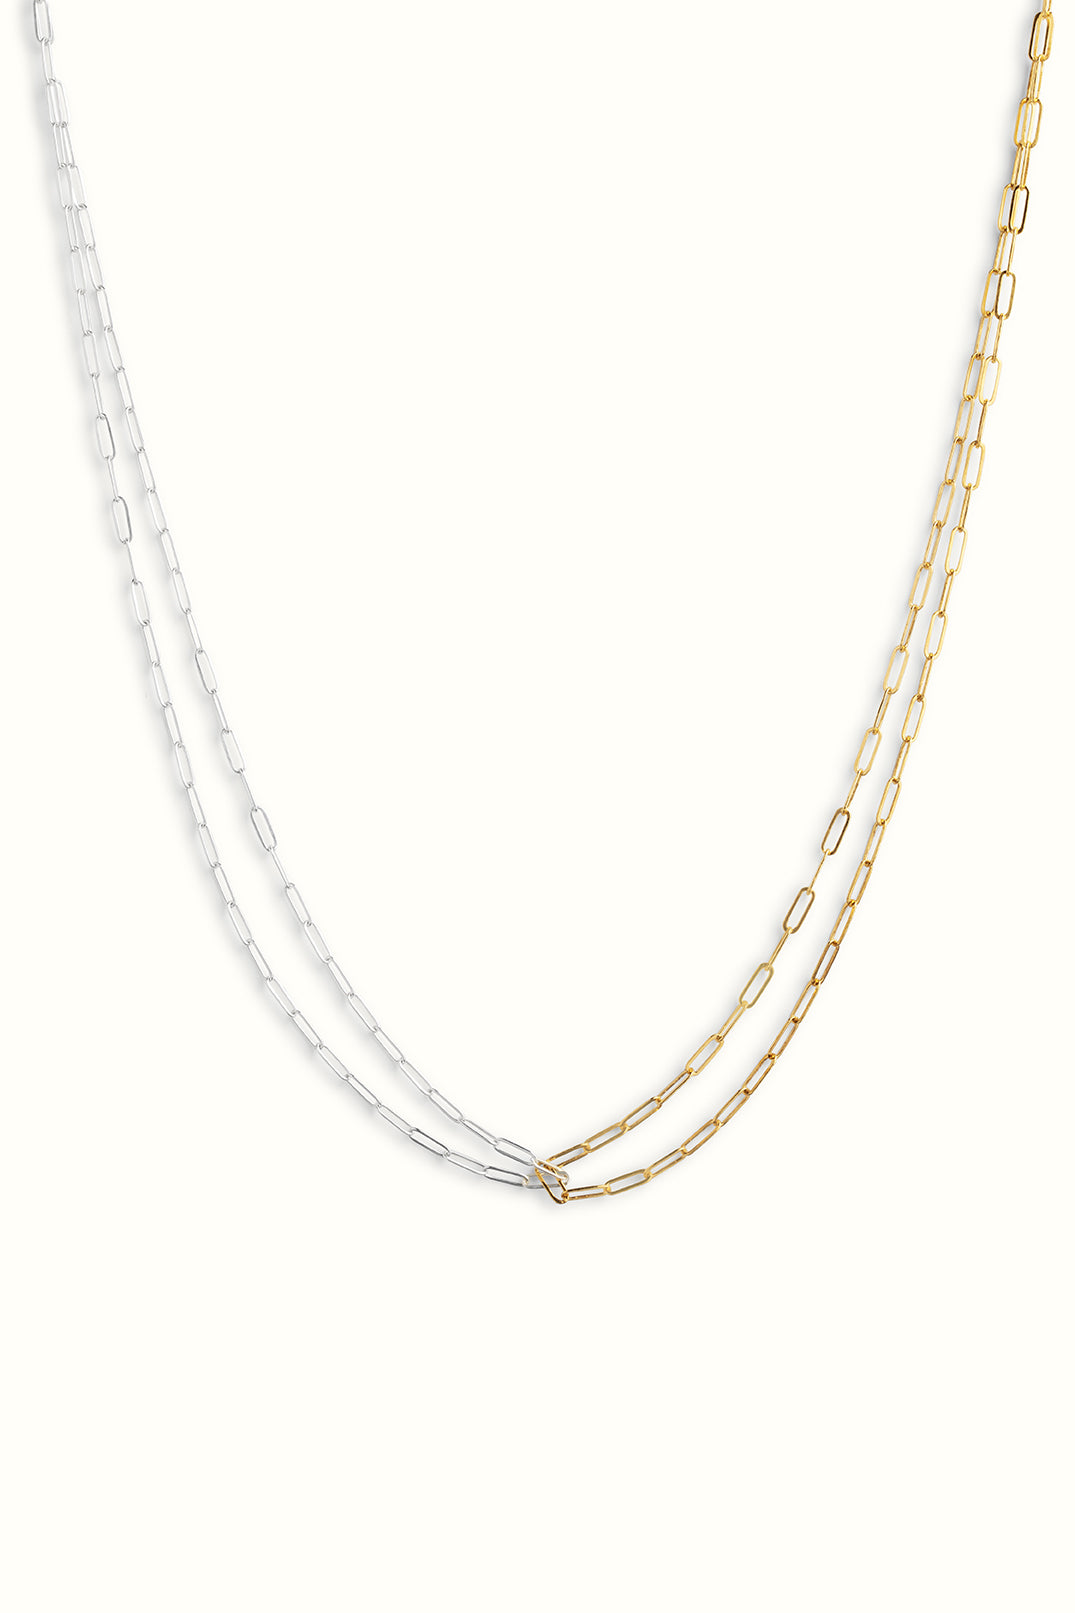 a gold filled and sterling silver combined paperclip necklace on a white background